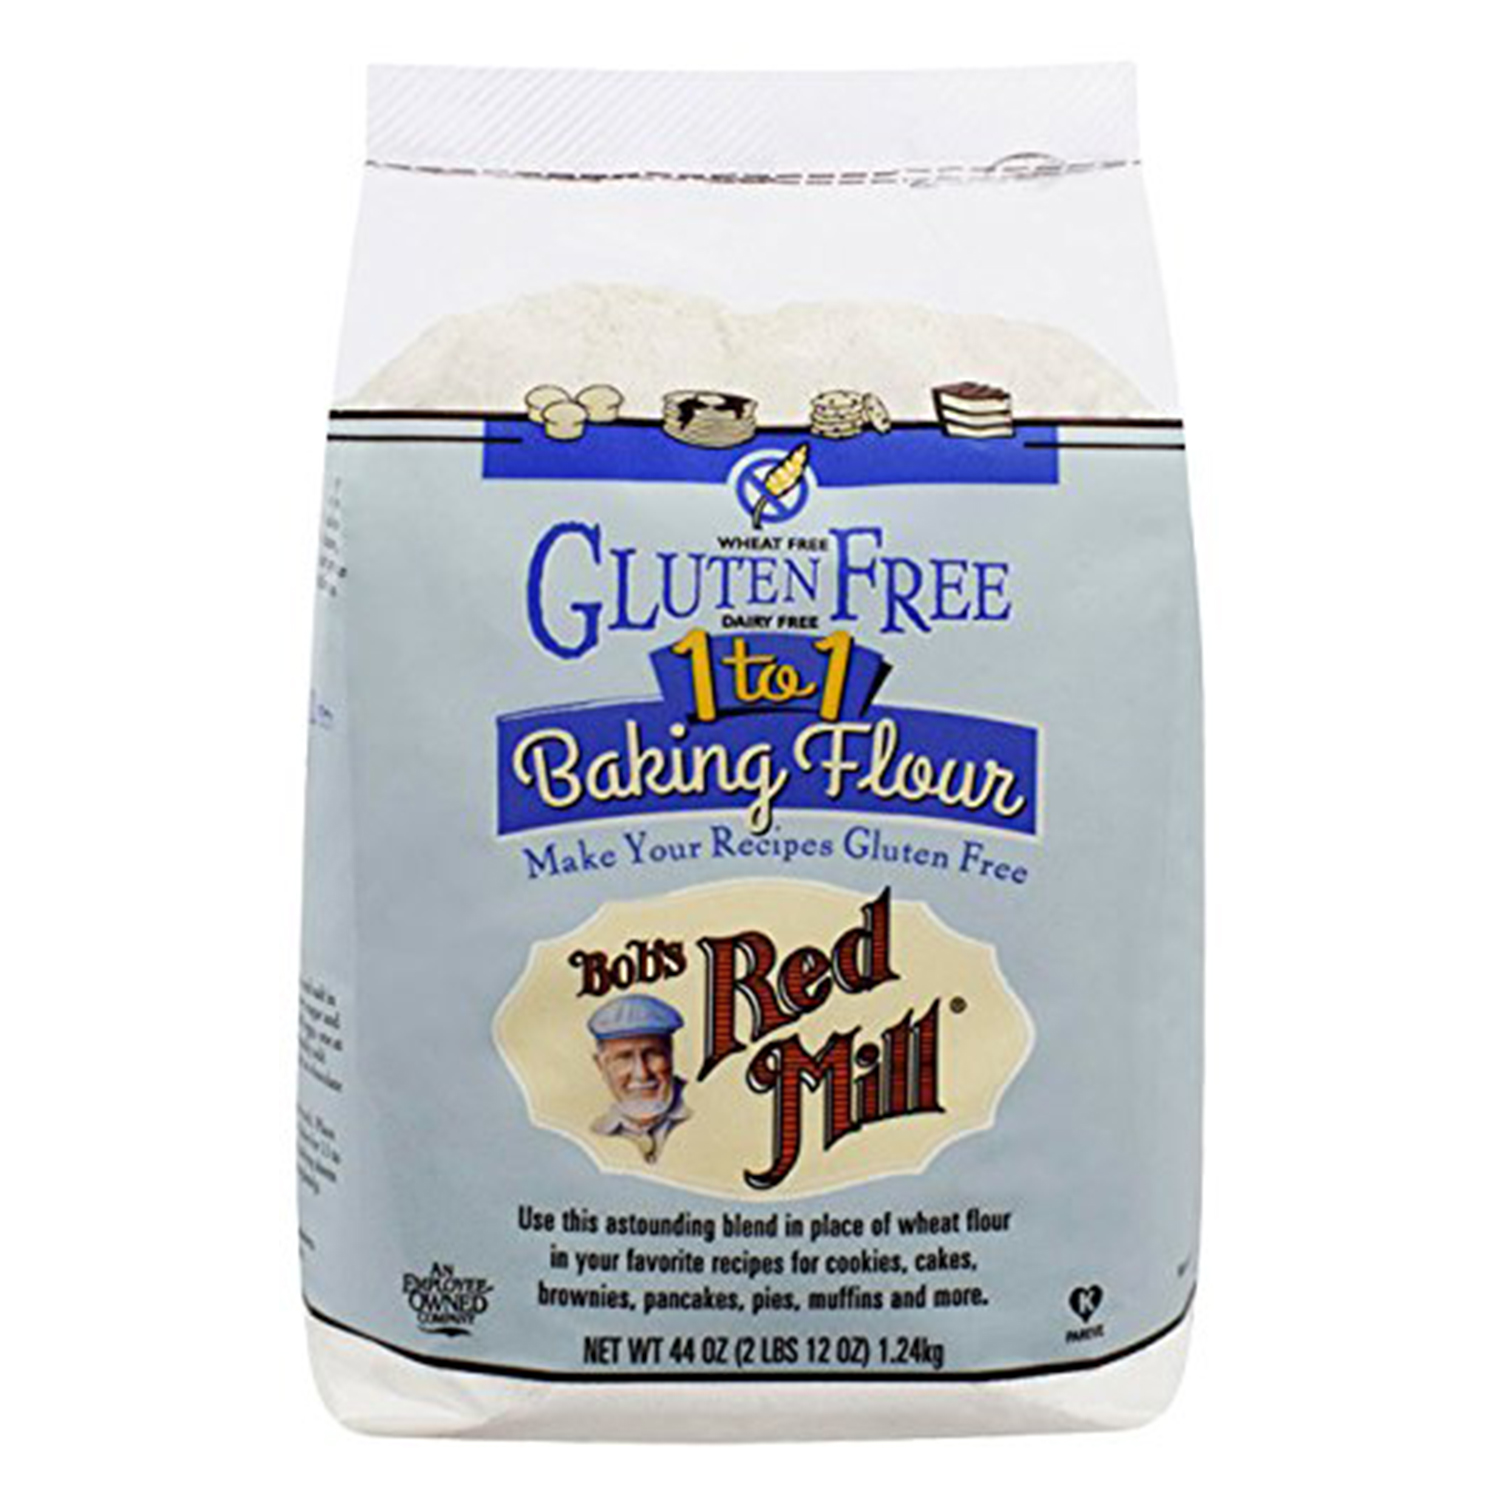 Our favorite store-bought gluten-free flour